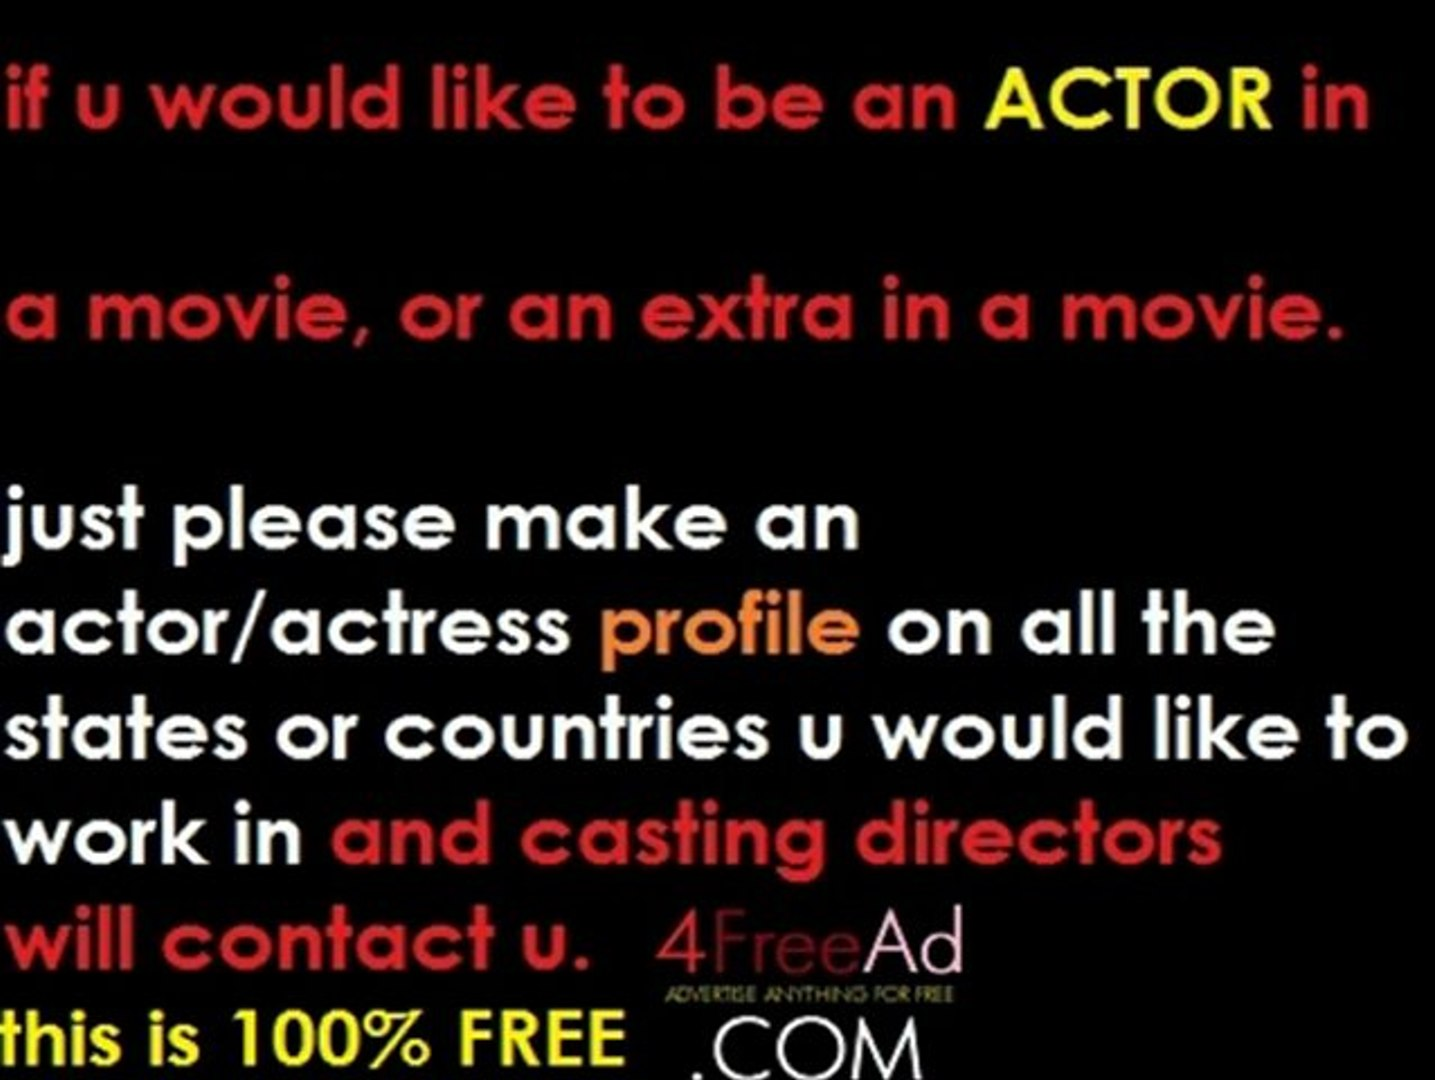 Actors needed, how to become an actor, extras needed for a movie, movie auditions, casting, actress